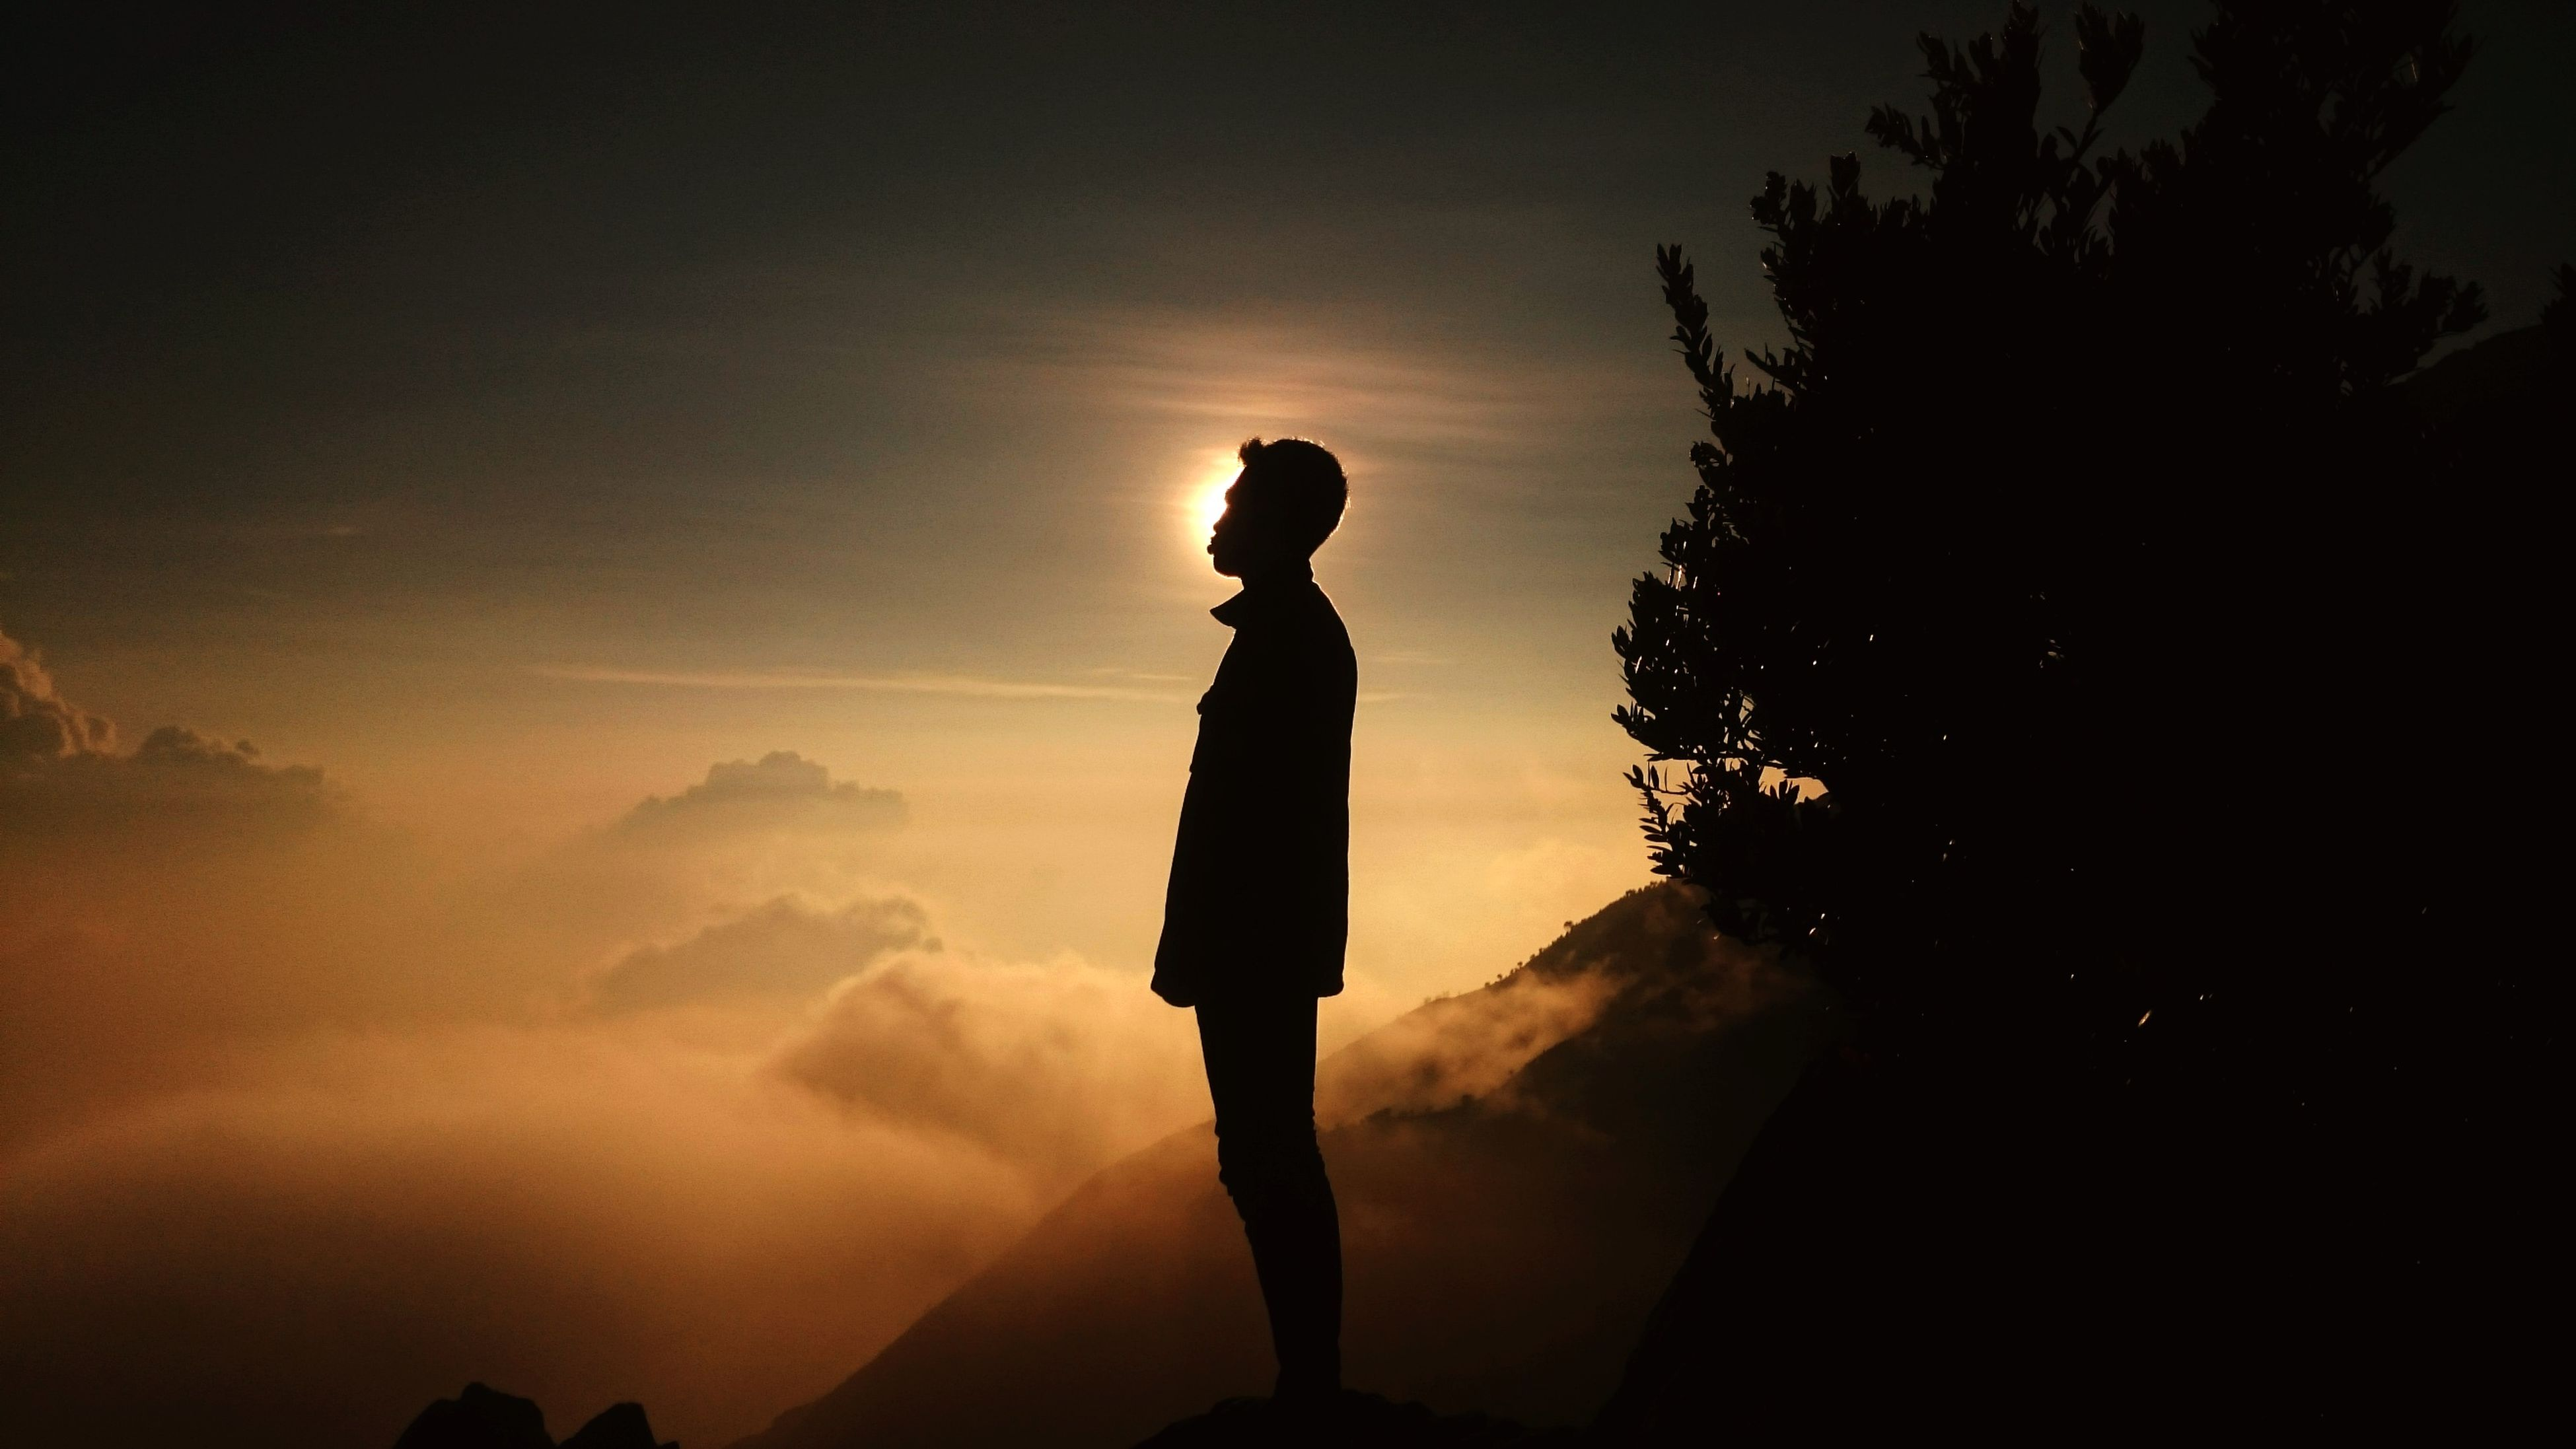 silhouette, sunset, sky, lifestyles, leisure activity, standing, men, low angle view, dusk, outline, nature, outdoors, tranquility, full length, cloud - sky, unrecognizable person, person, sun